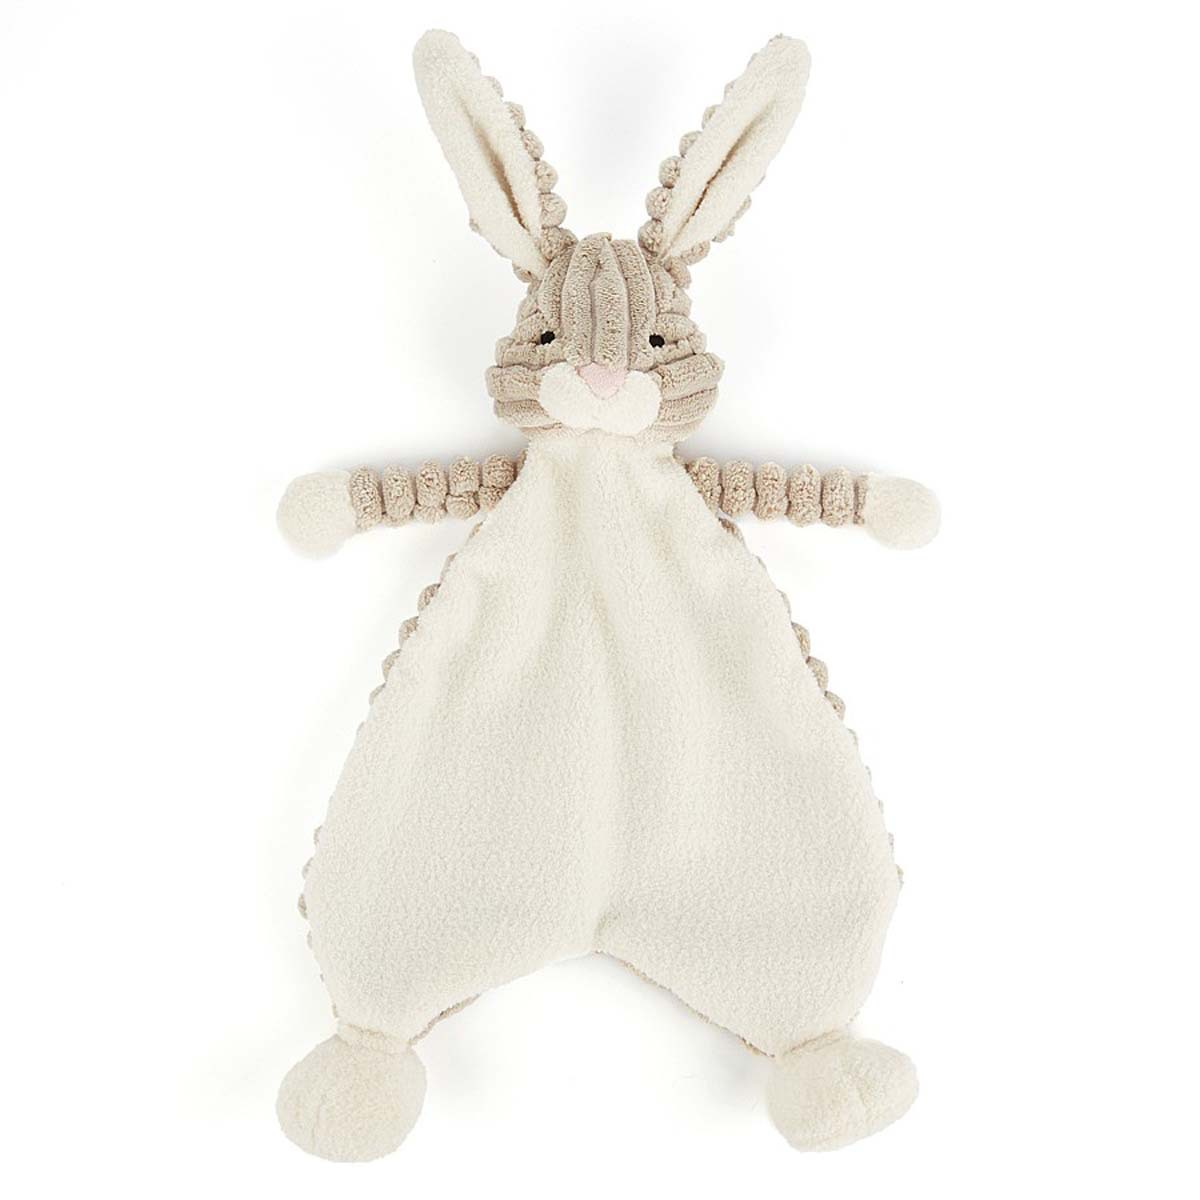 Doudou Cordy Roy Baby Hare Soother Cordy Roy Baby Hare Soother